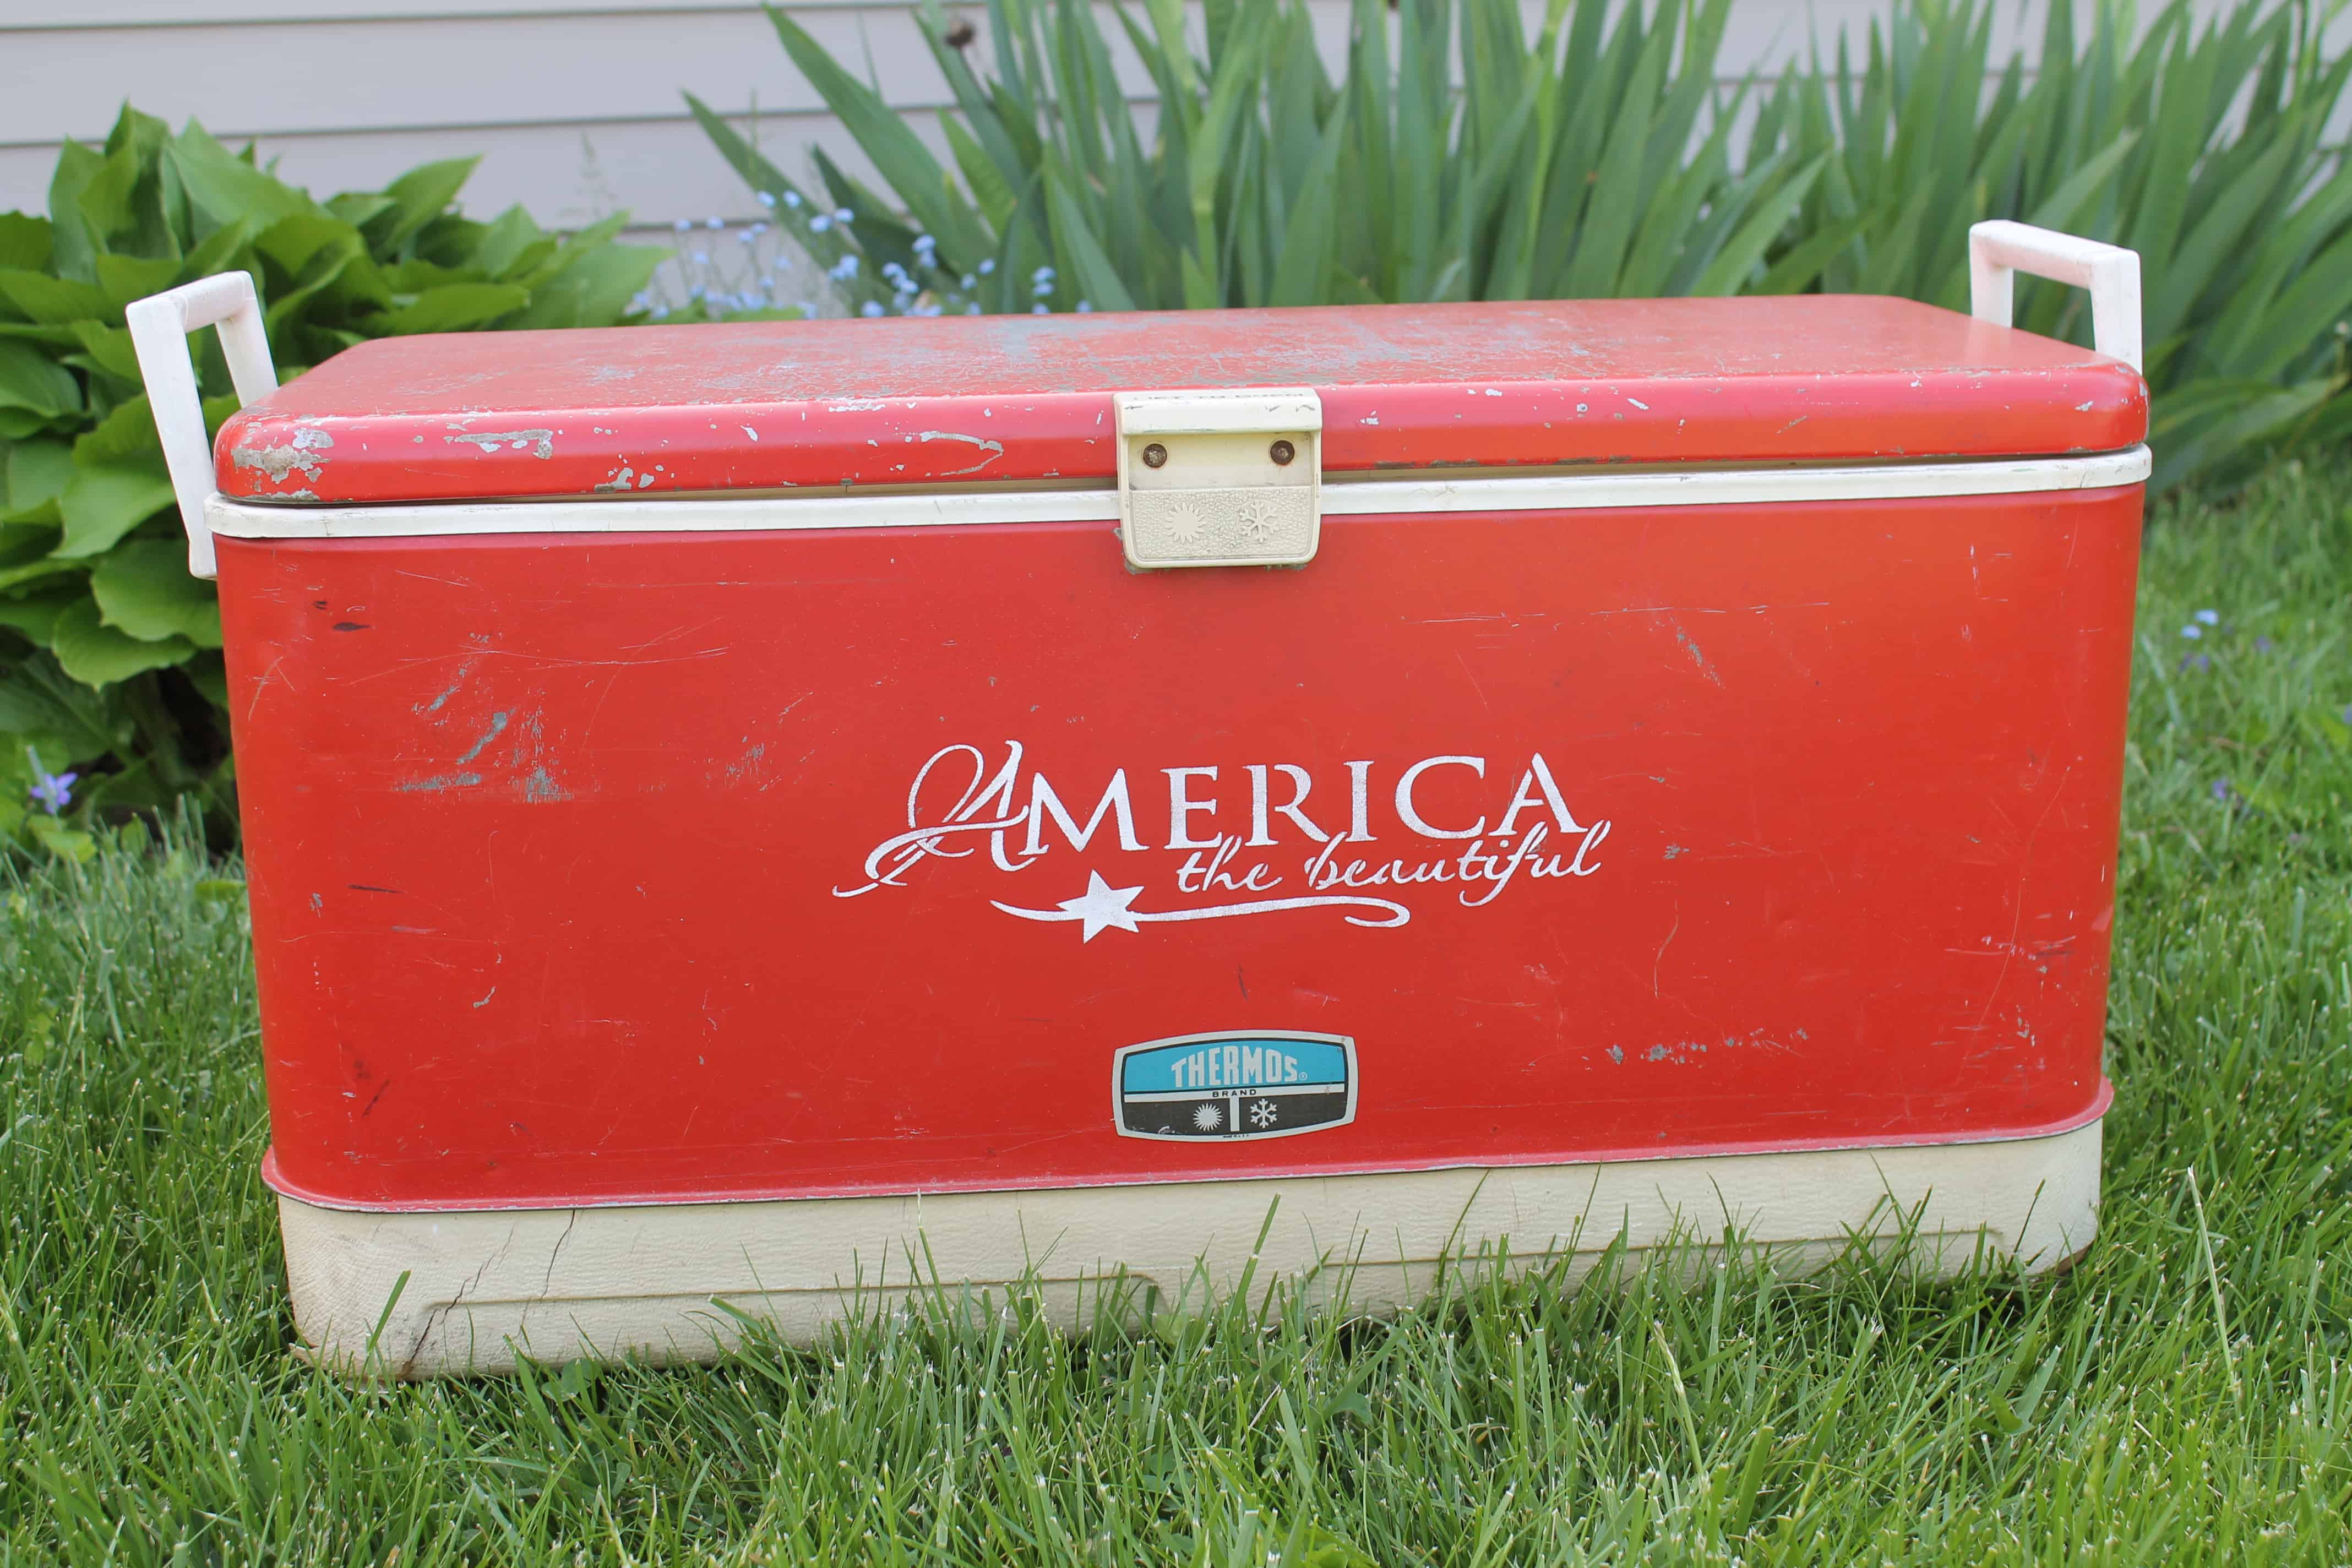 Vintage red cooler with America stencil